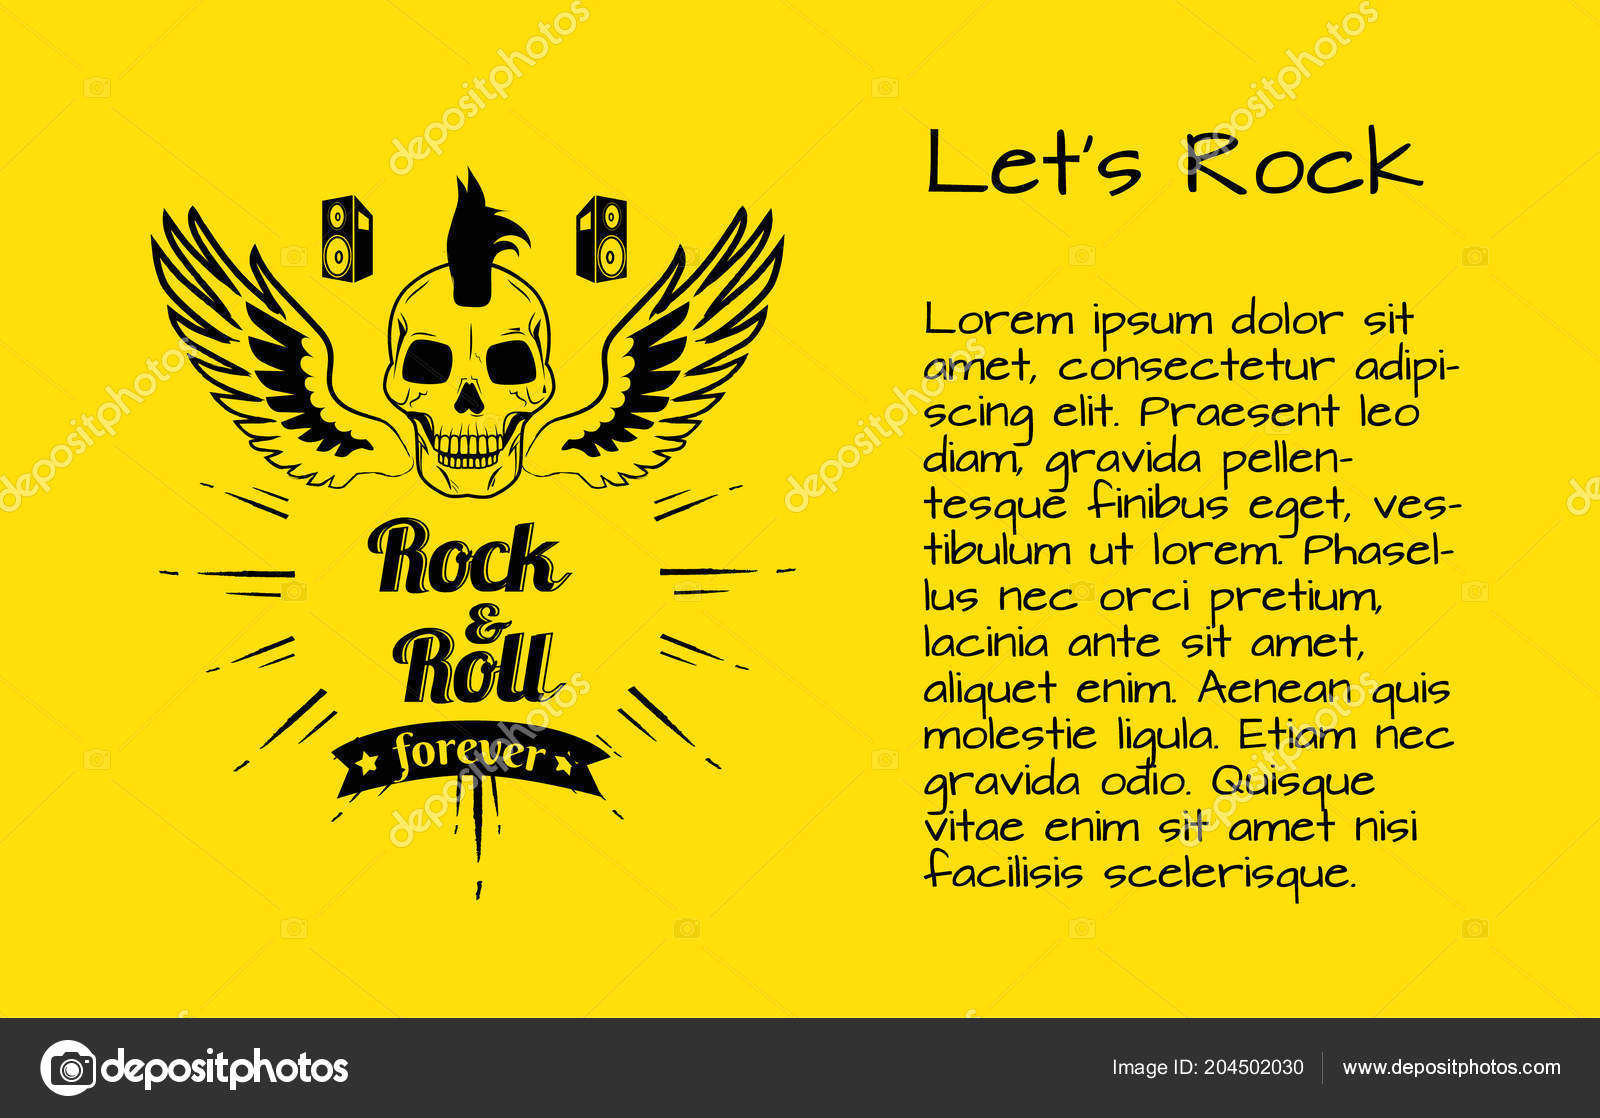 Let S Rock And Rock And Roll Forever Poster Stock Vector Robuart